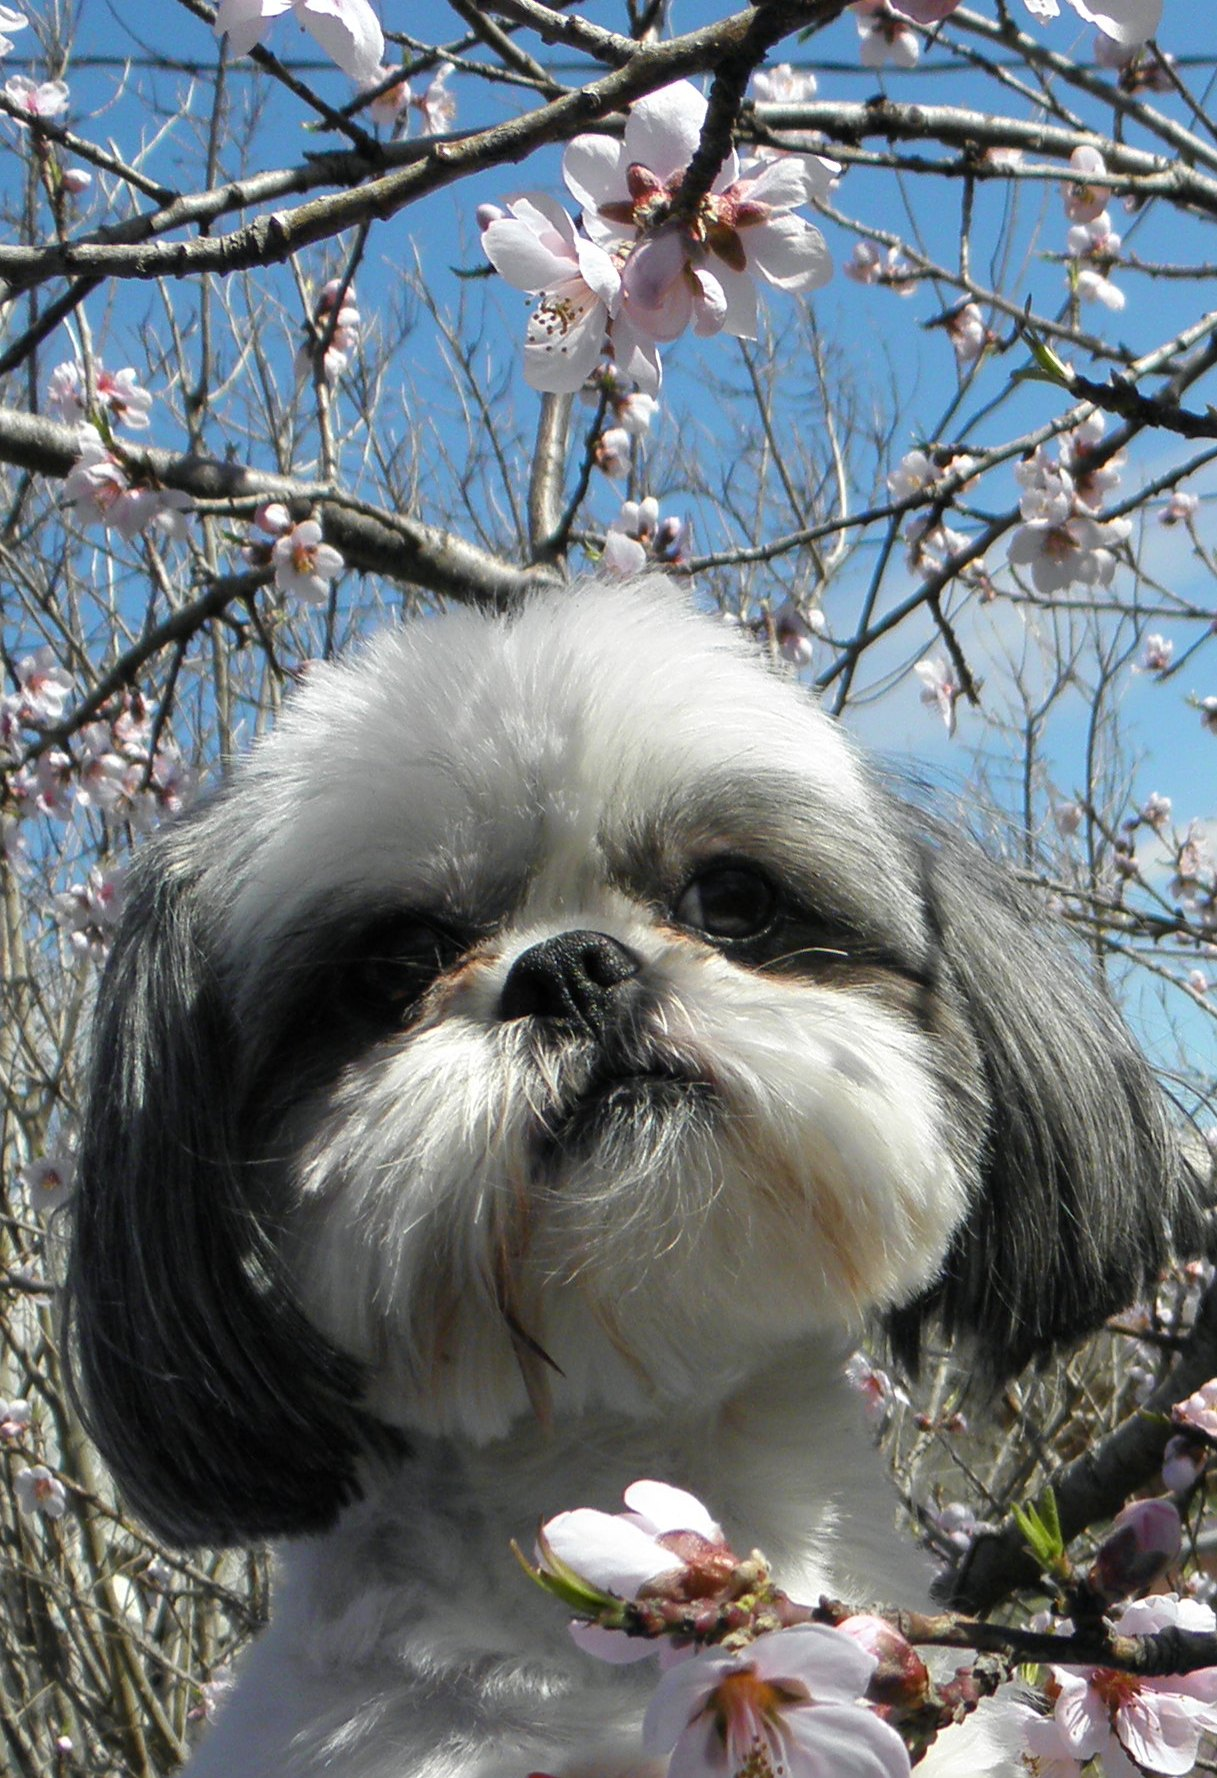 Which of these health problems are Shih Tzu prone to?